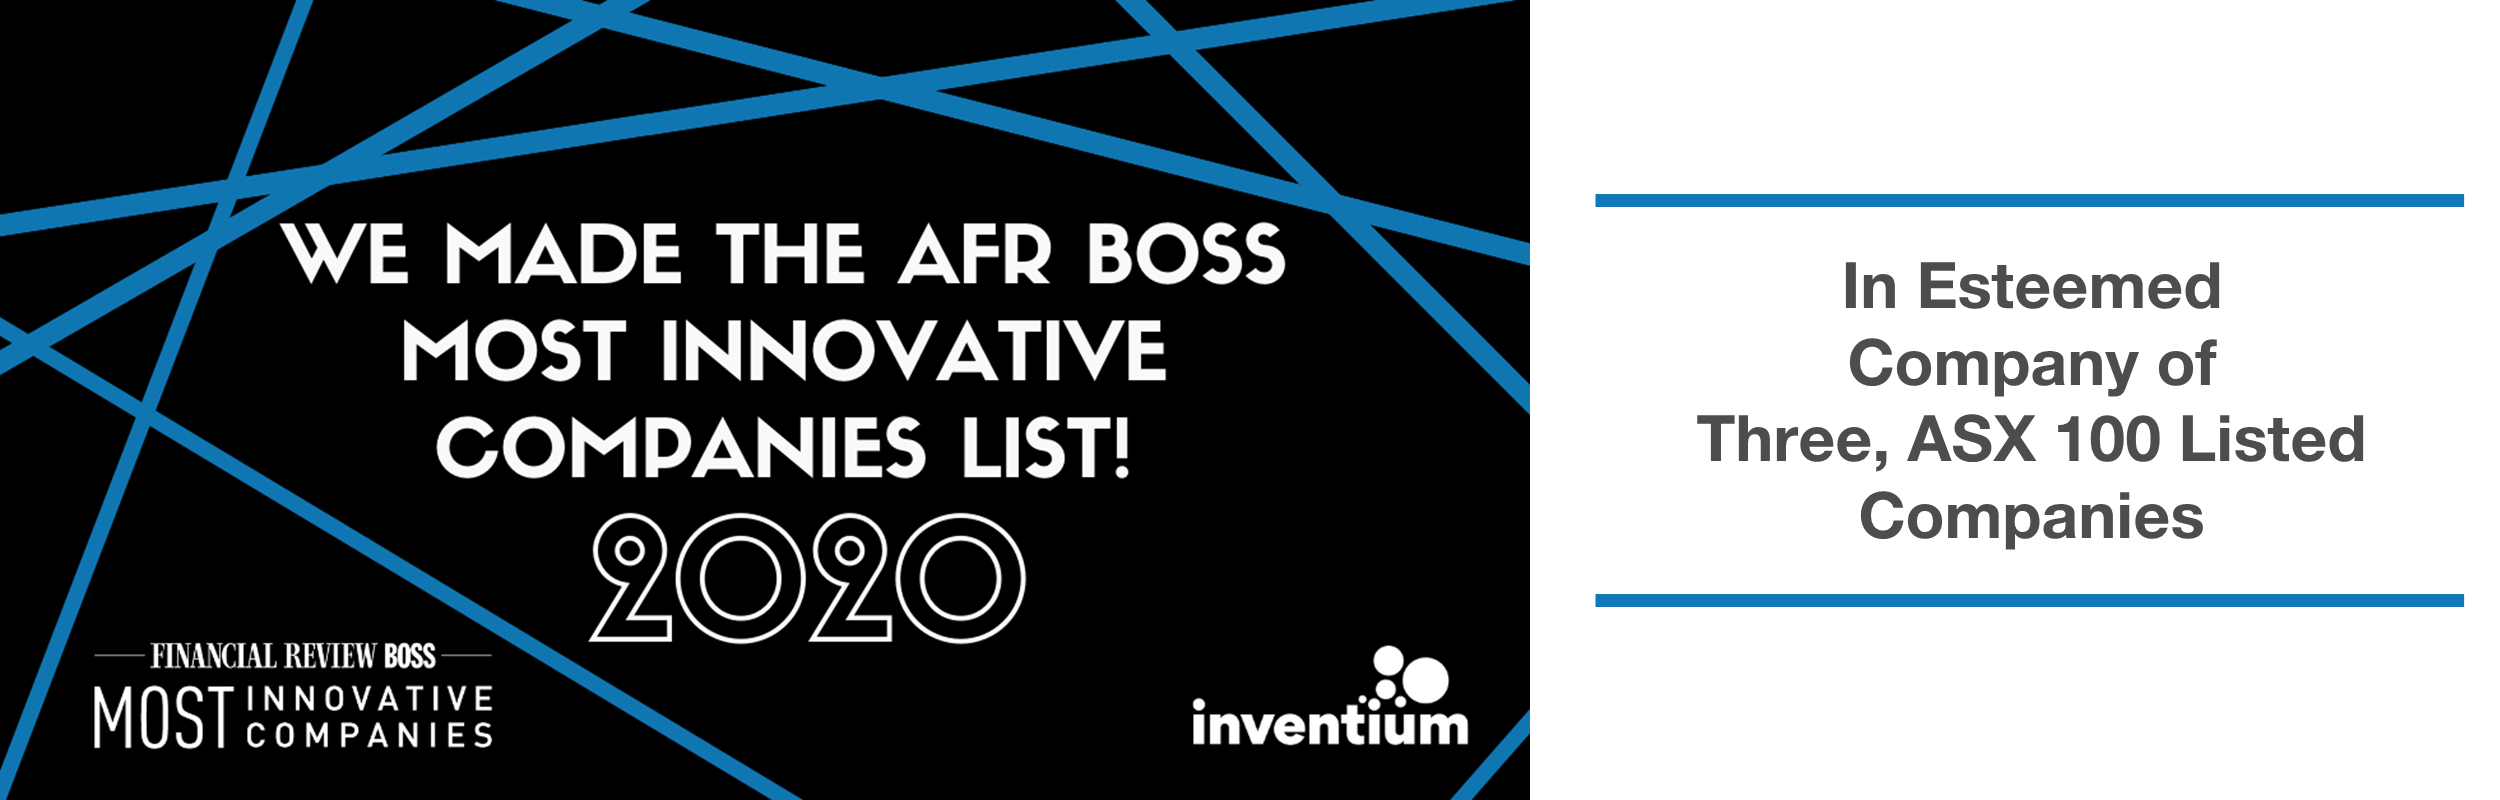 AFR_Boss_Innovative